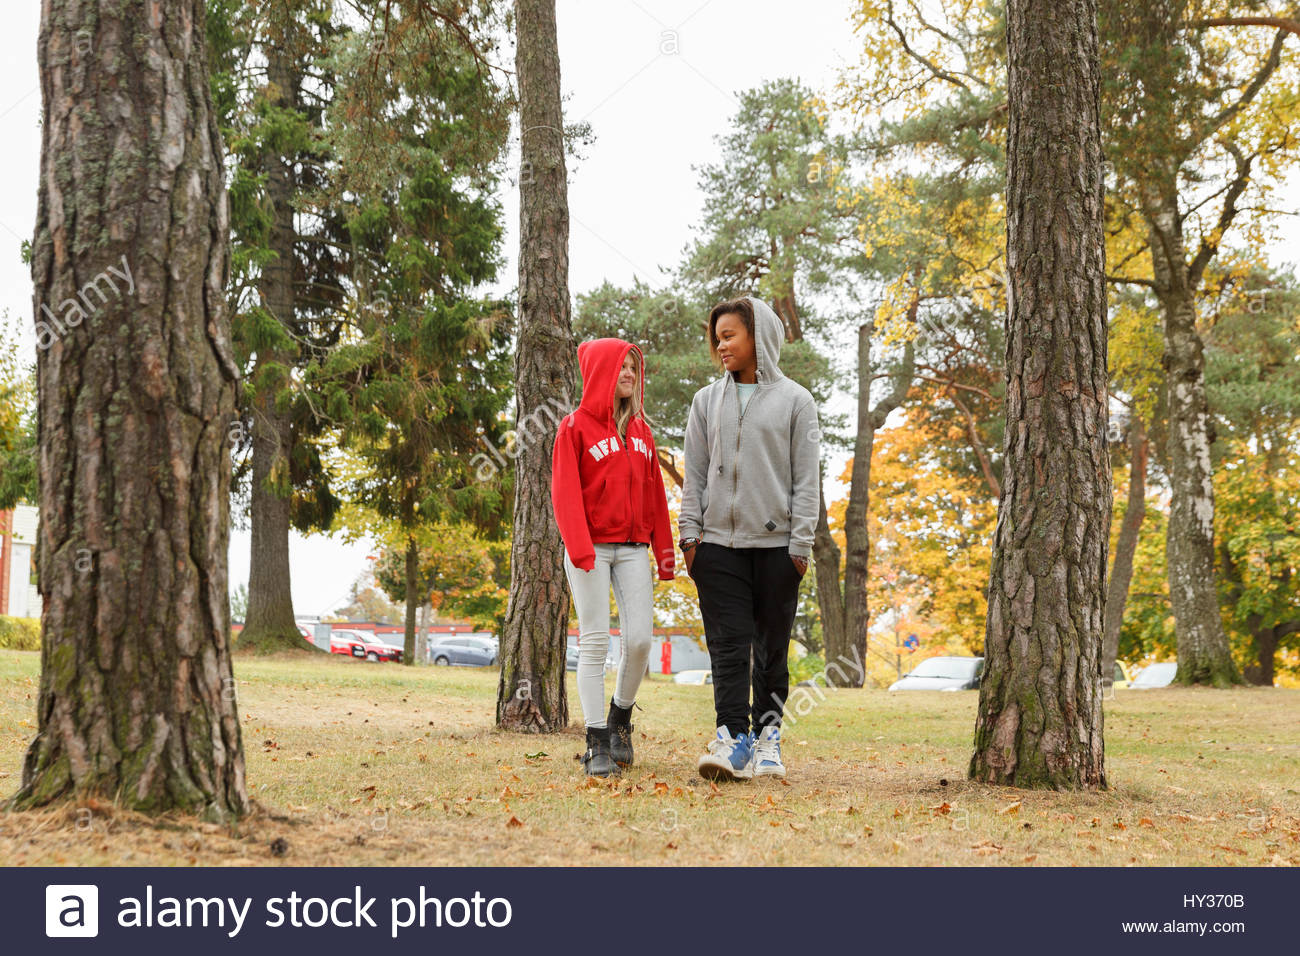 Sweden, Sodermanland, Jarna, Girls (12-13) with hoods on chatting while walking among trees - Stock Image